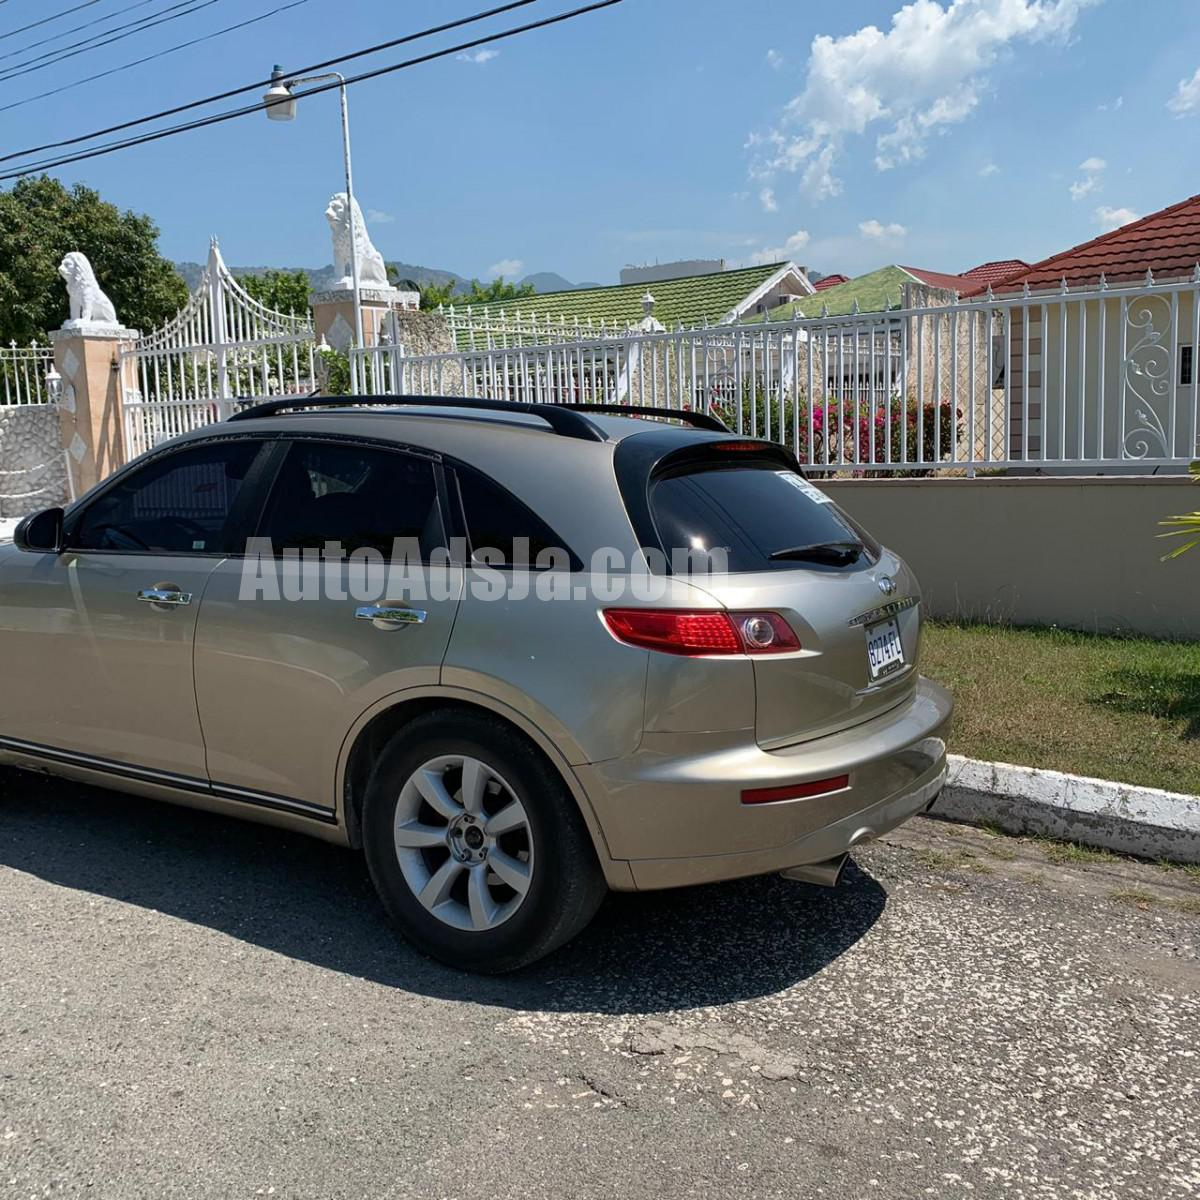 2004 Infiniti Fx35 For Sale In Kingston / St. Andrew